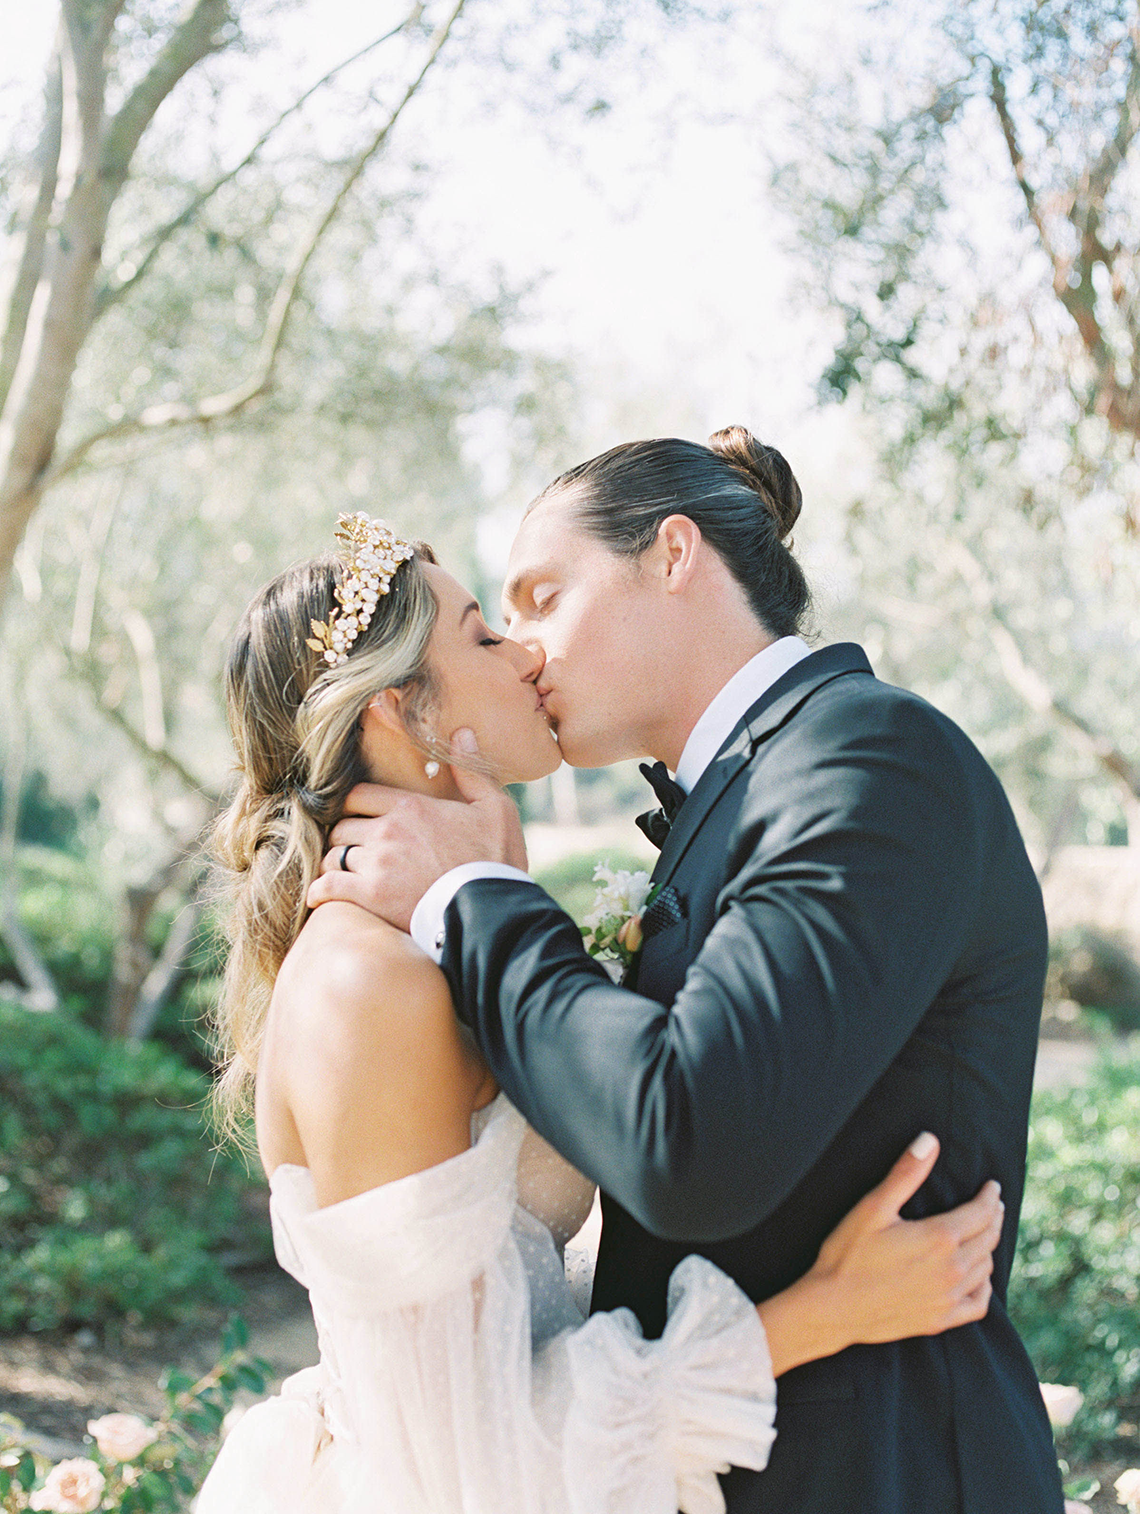 Gorgeous Garden Wedding Vow Renewal Inspiration – iamlatreuo photo – KWH Bridal 40